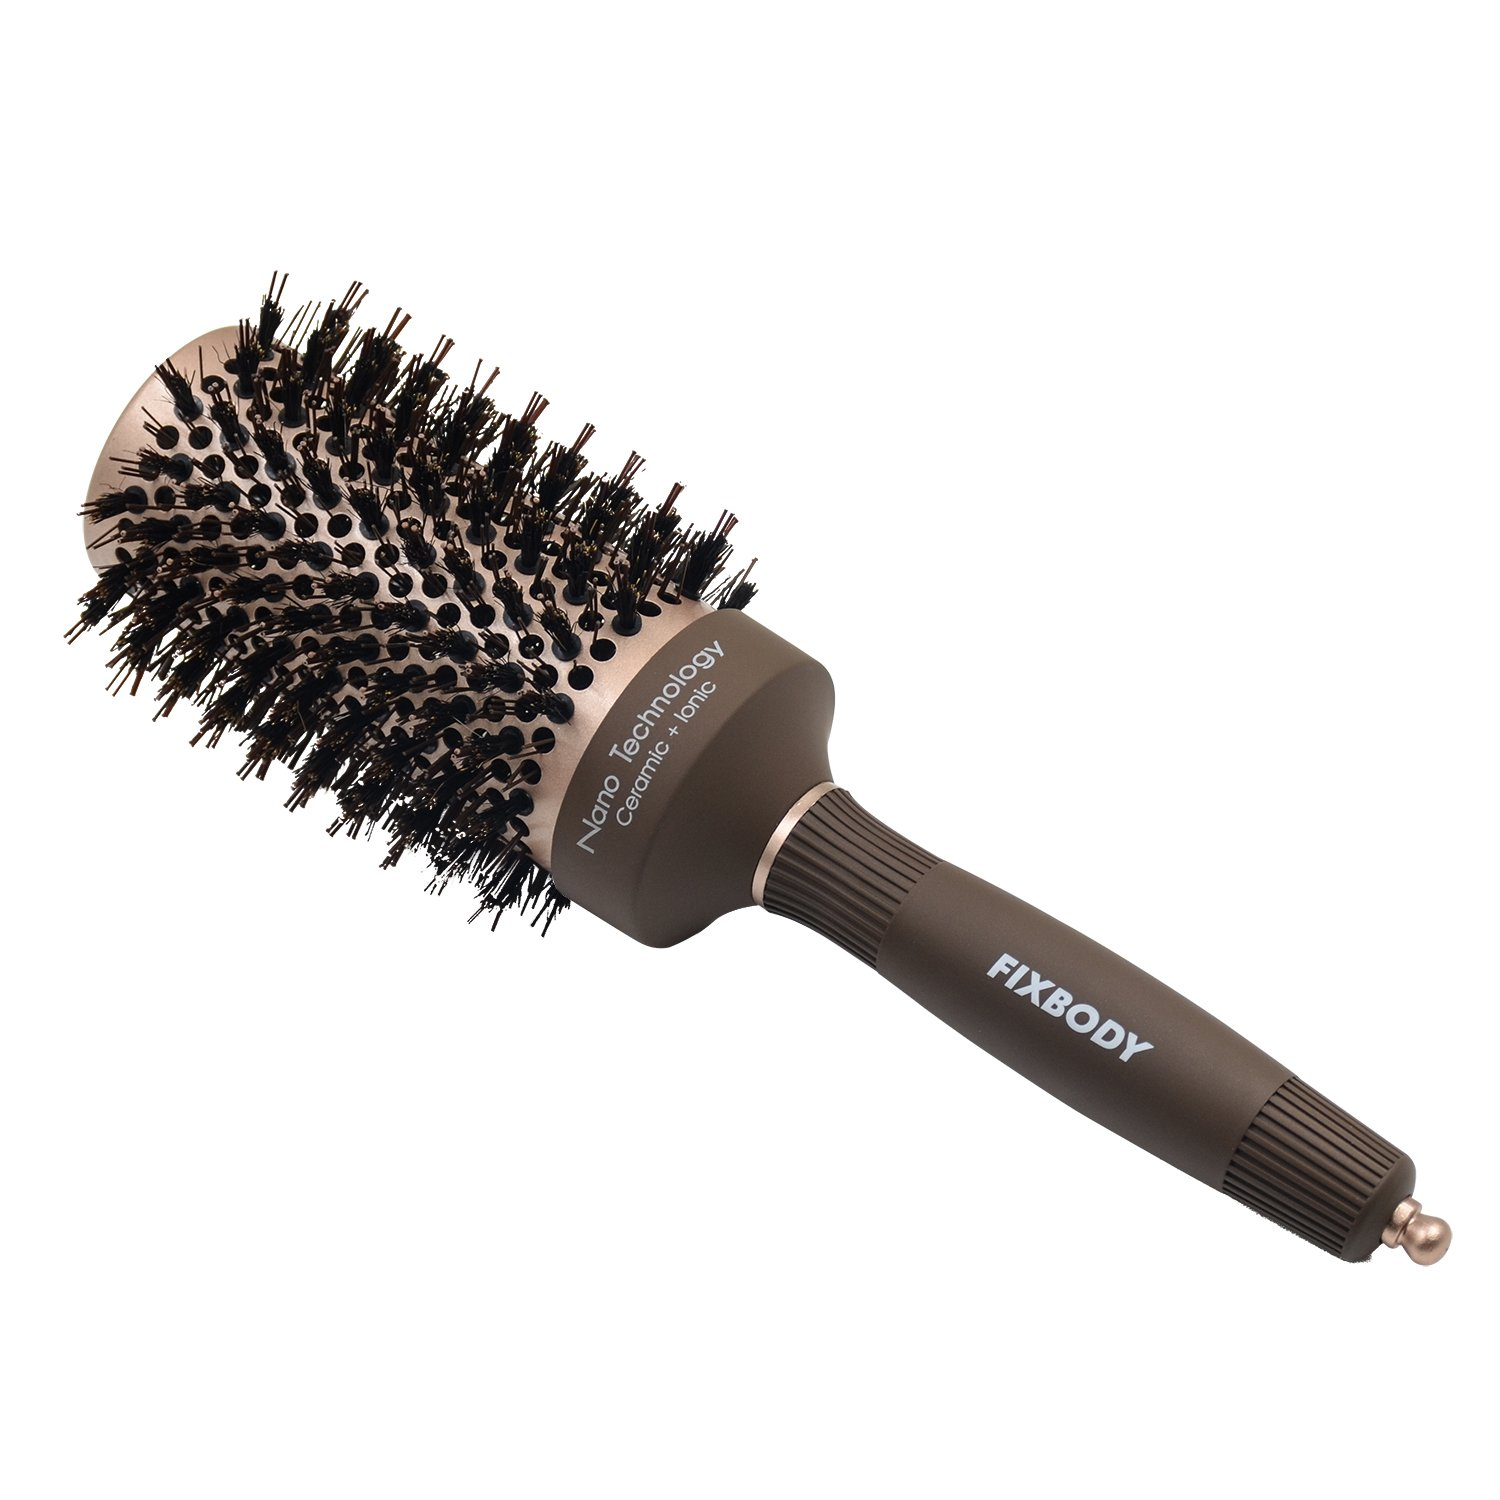 Best Budget: FIXBODY Boar Bristles Round Hair Brush for fine hair